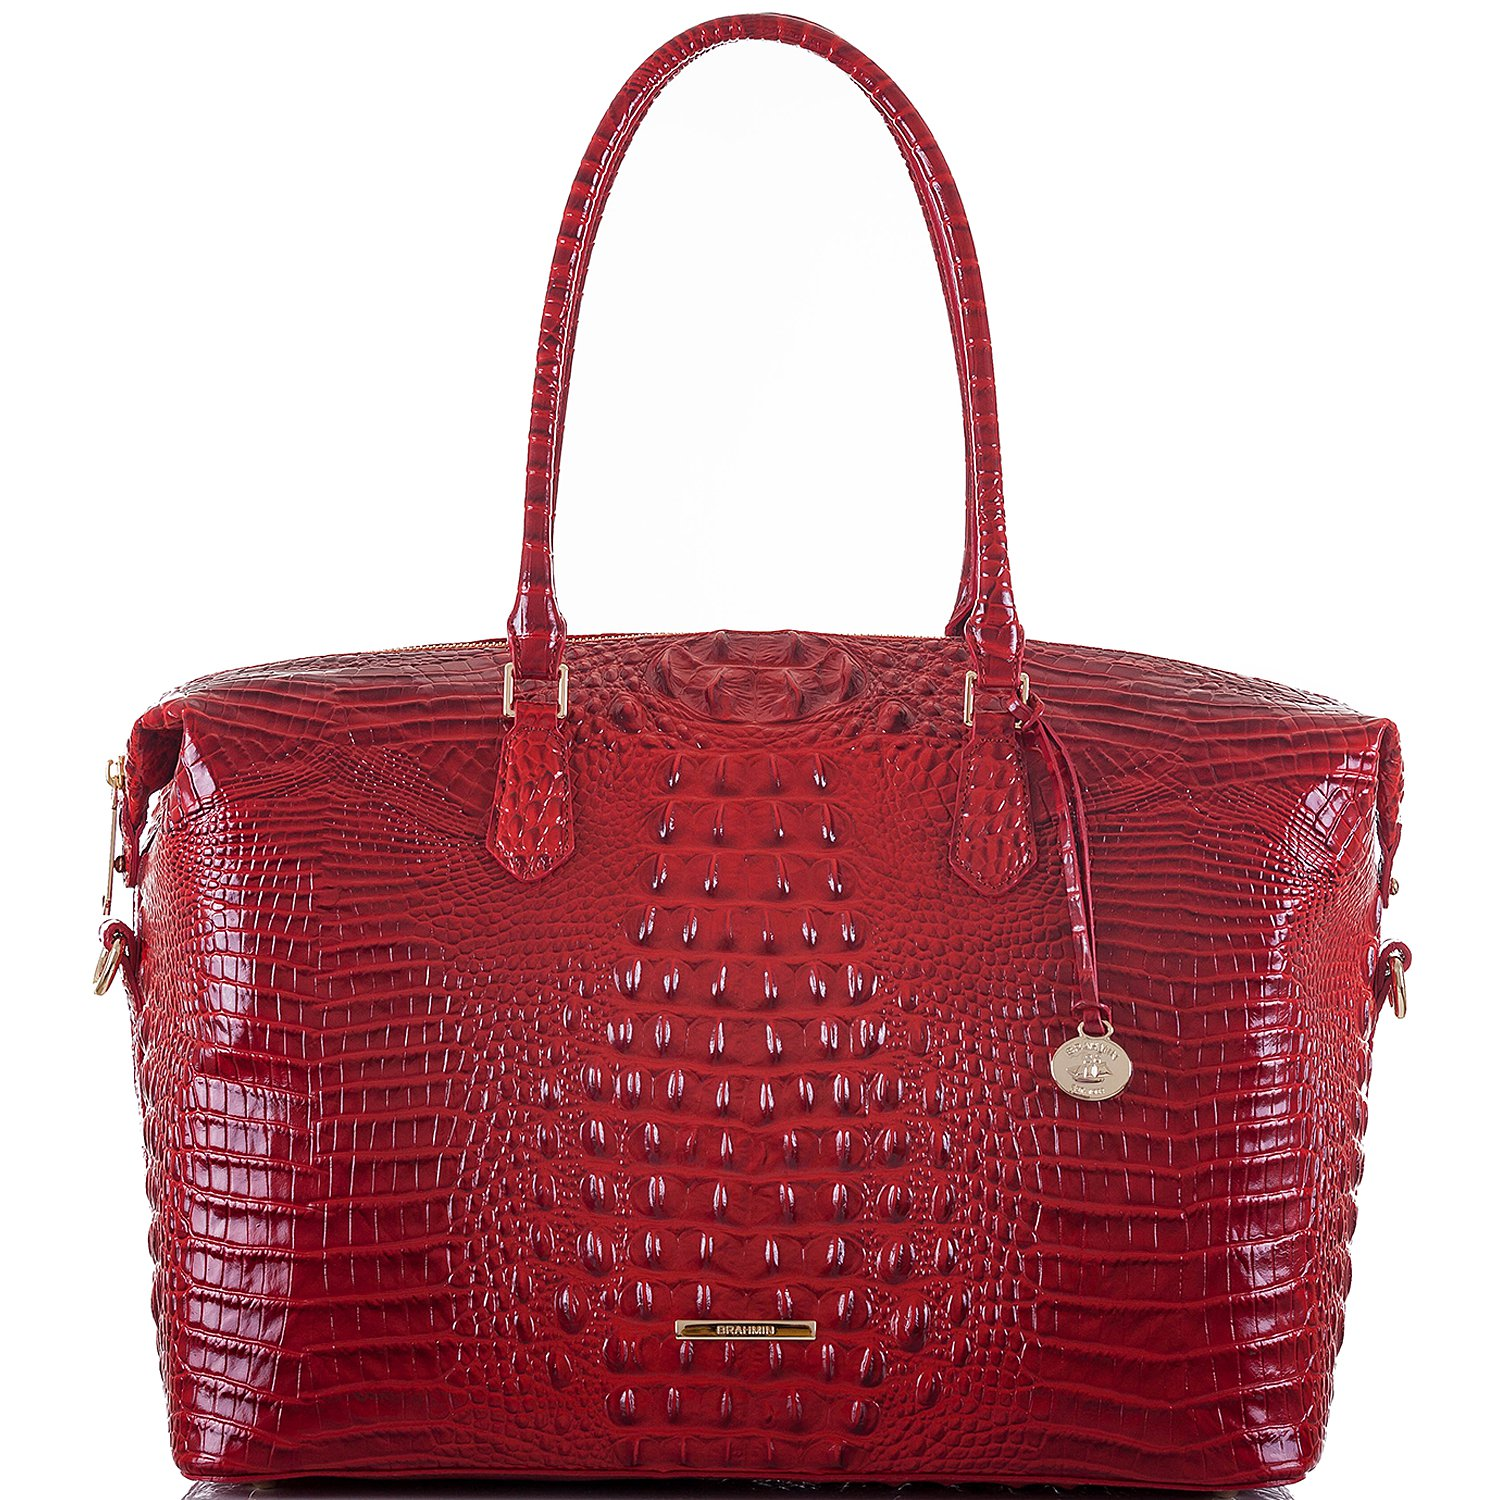 The Duxbury Carryall in Scarlet Melbourne